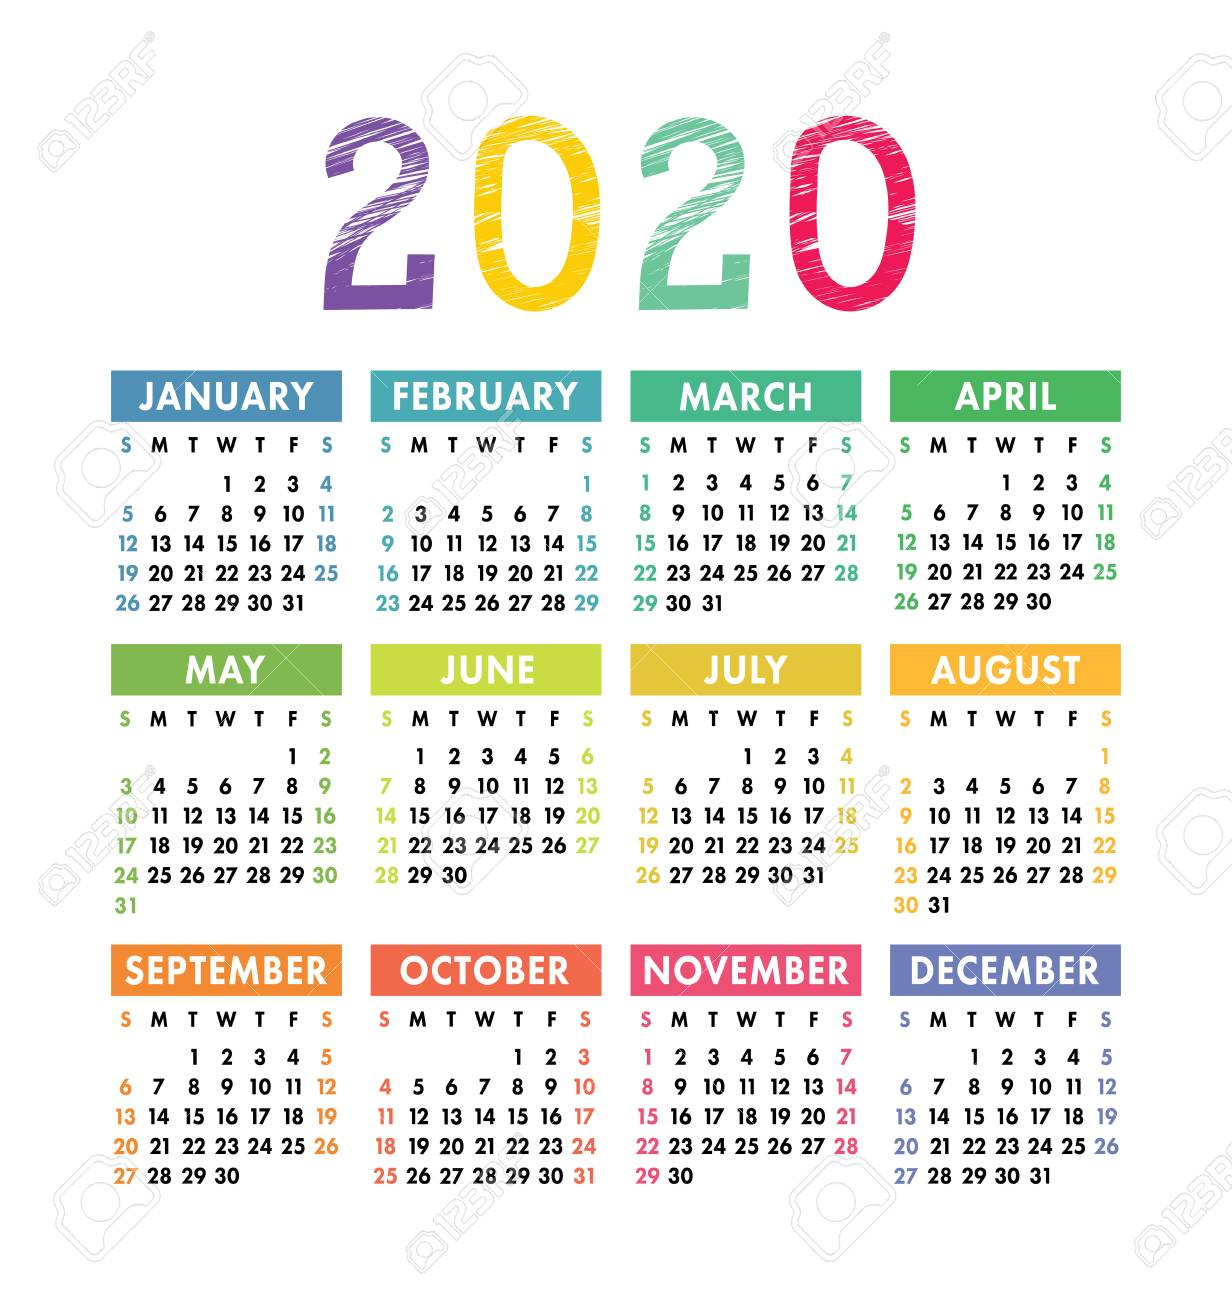 Printable Pocket Calendar 2020 - Wpa.wpart.co inside Printable 2020 Pocket Calendars Free Printable